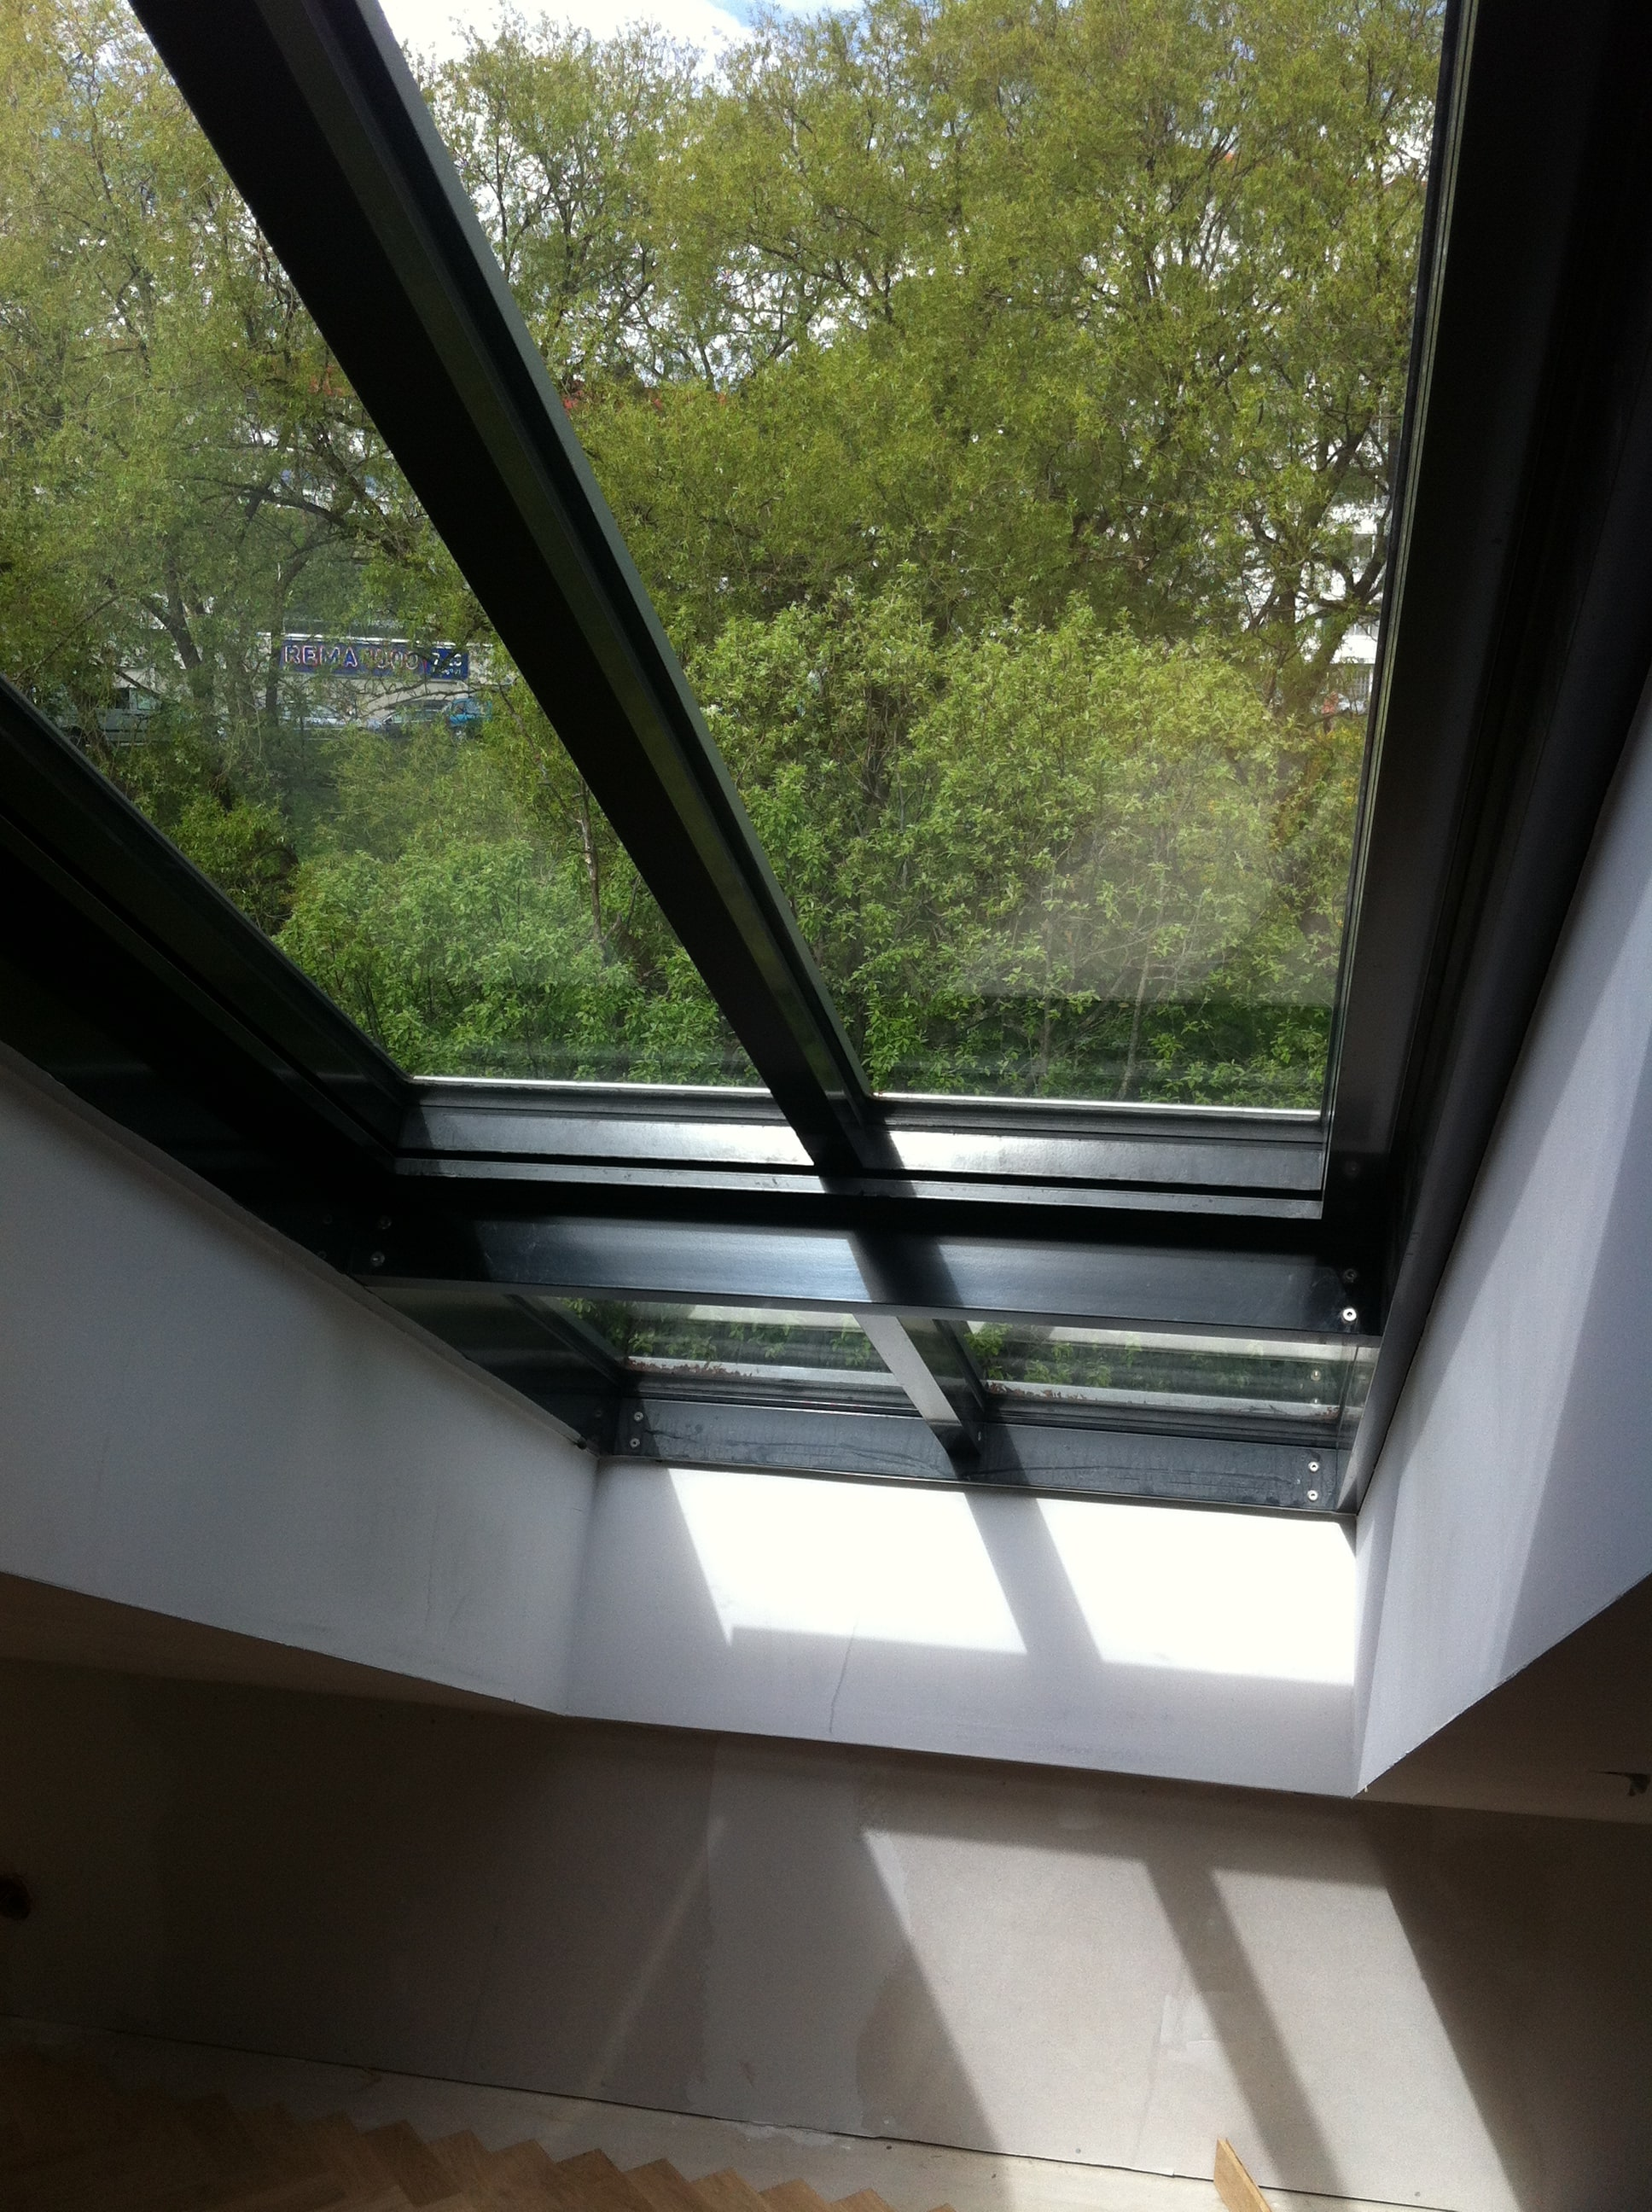 midos rooflights dark